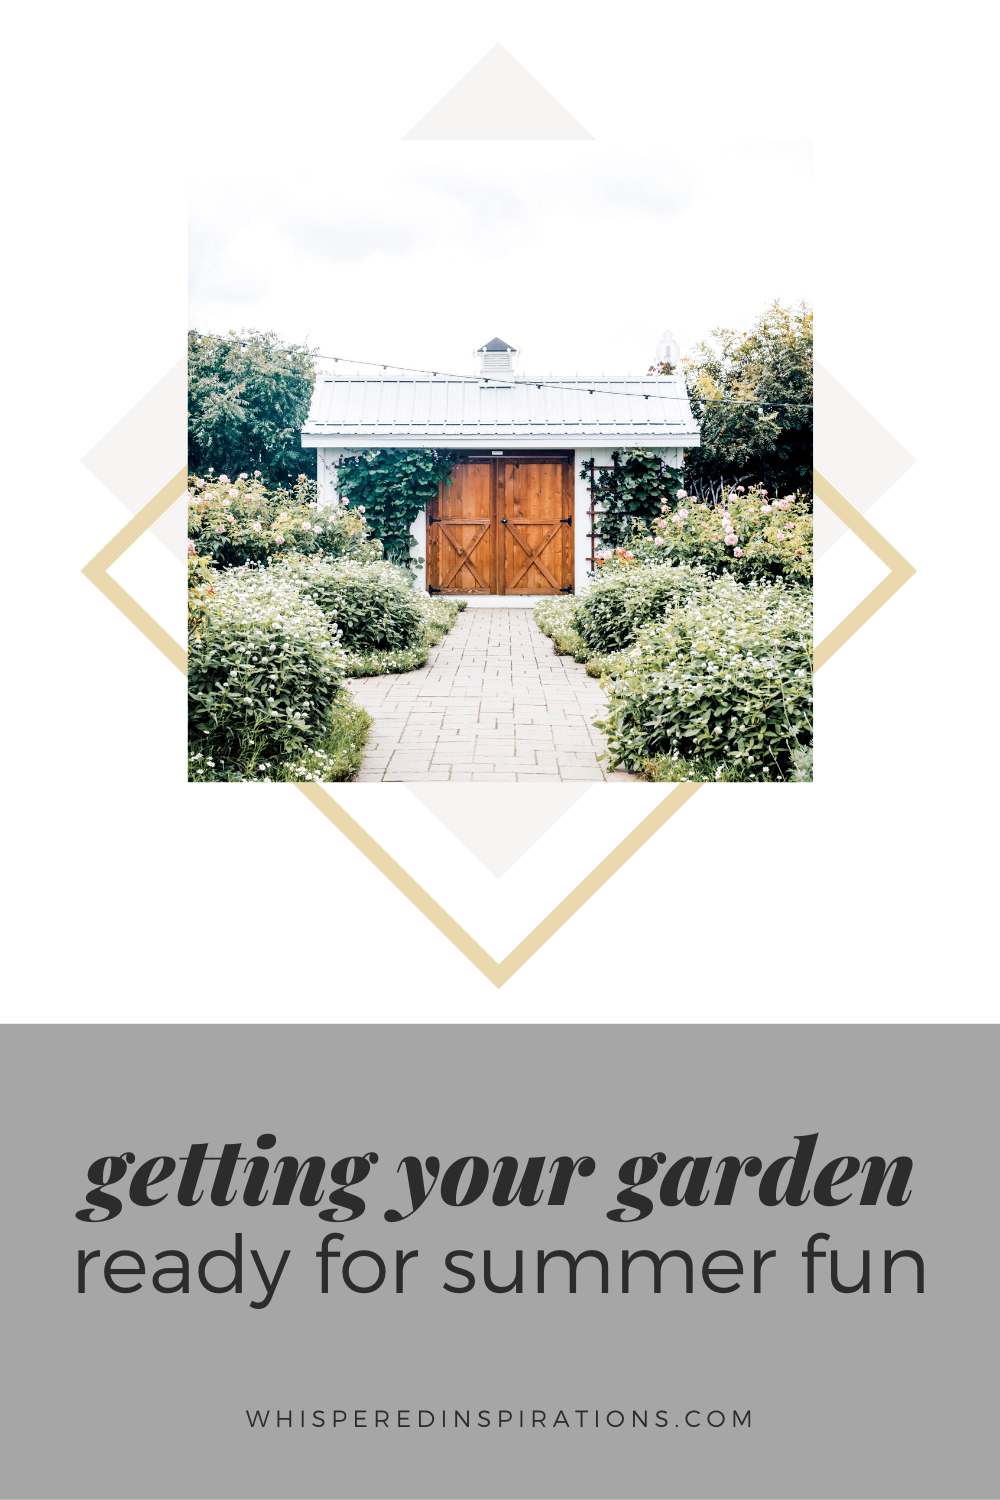 A beautiful farmhouse and rustic garden with a rustic shed in the background. This article covers getting your garden ready for summer fun.